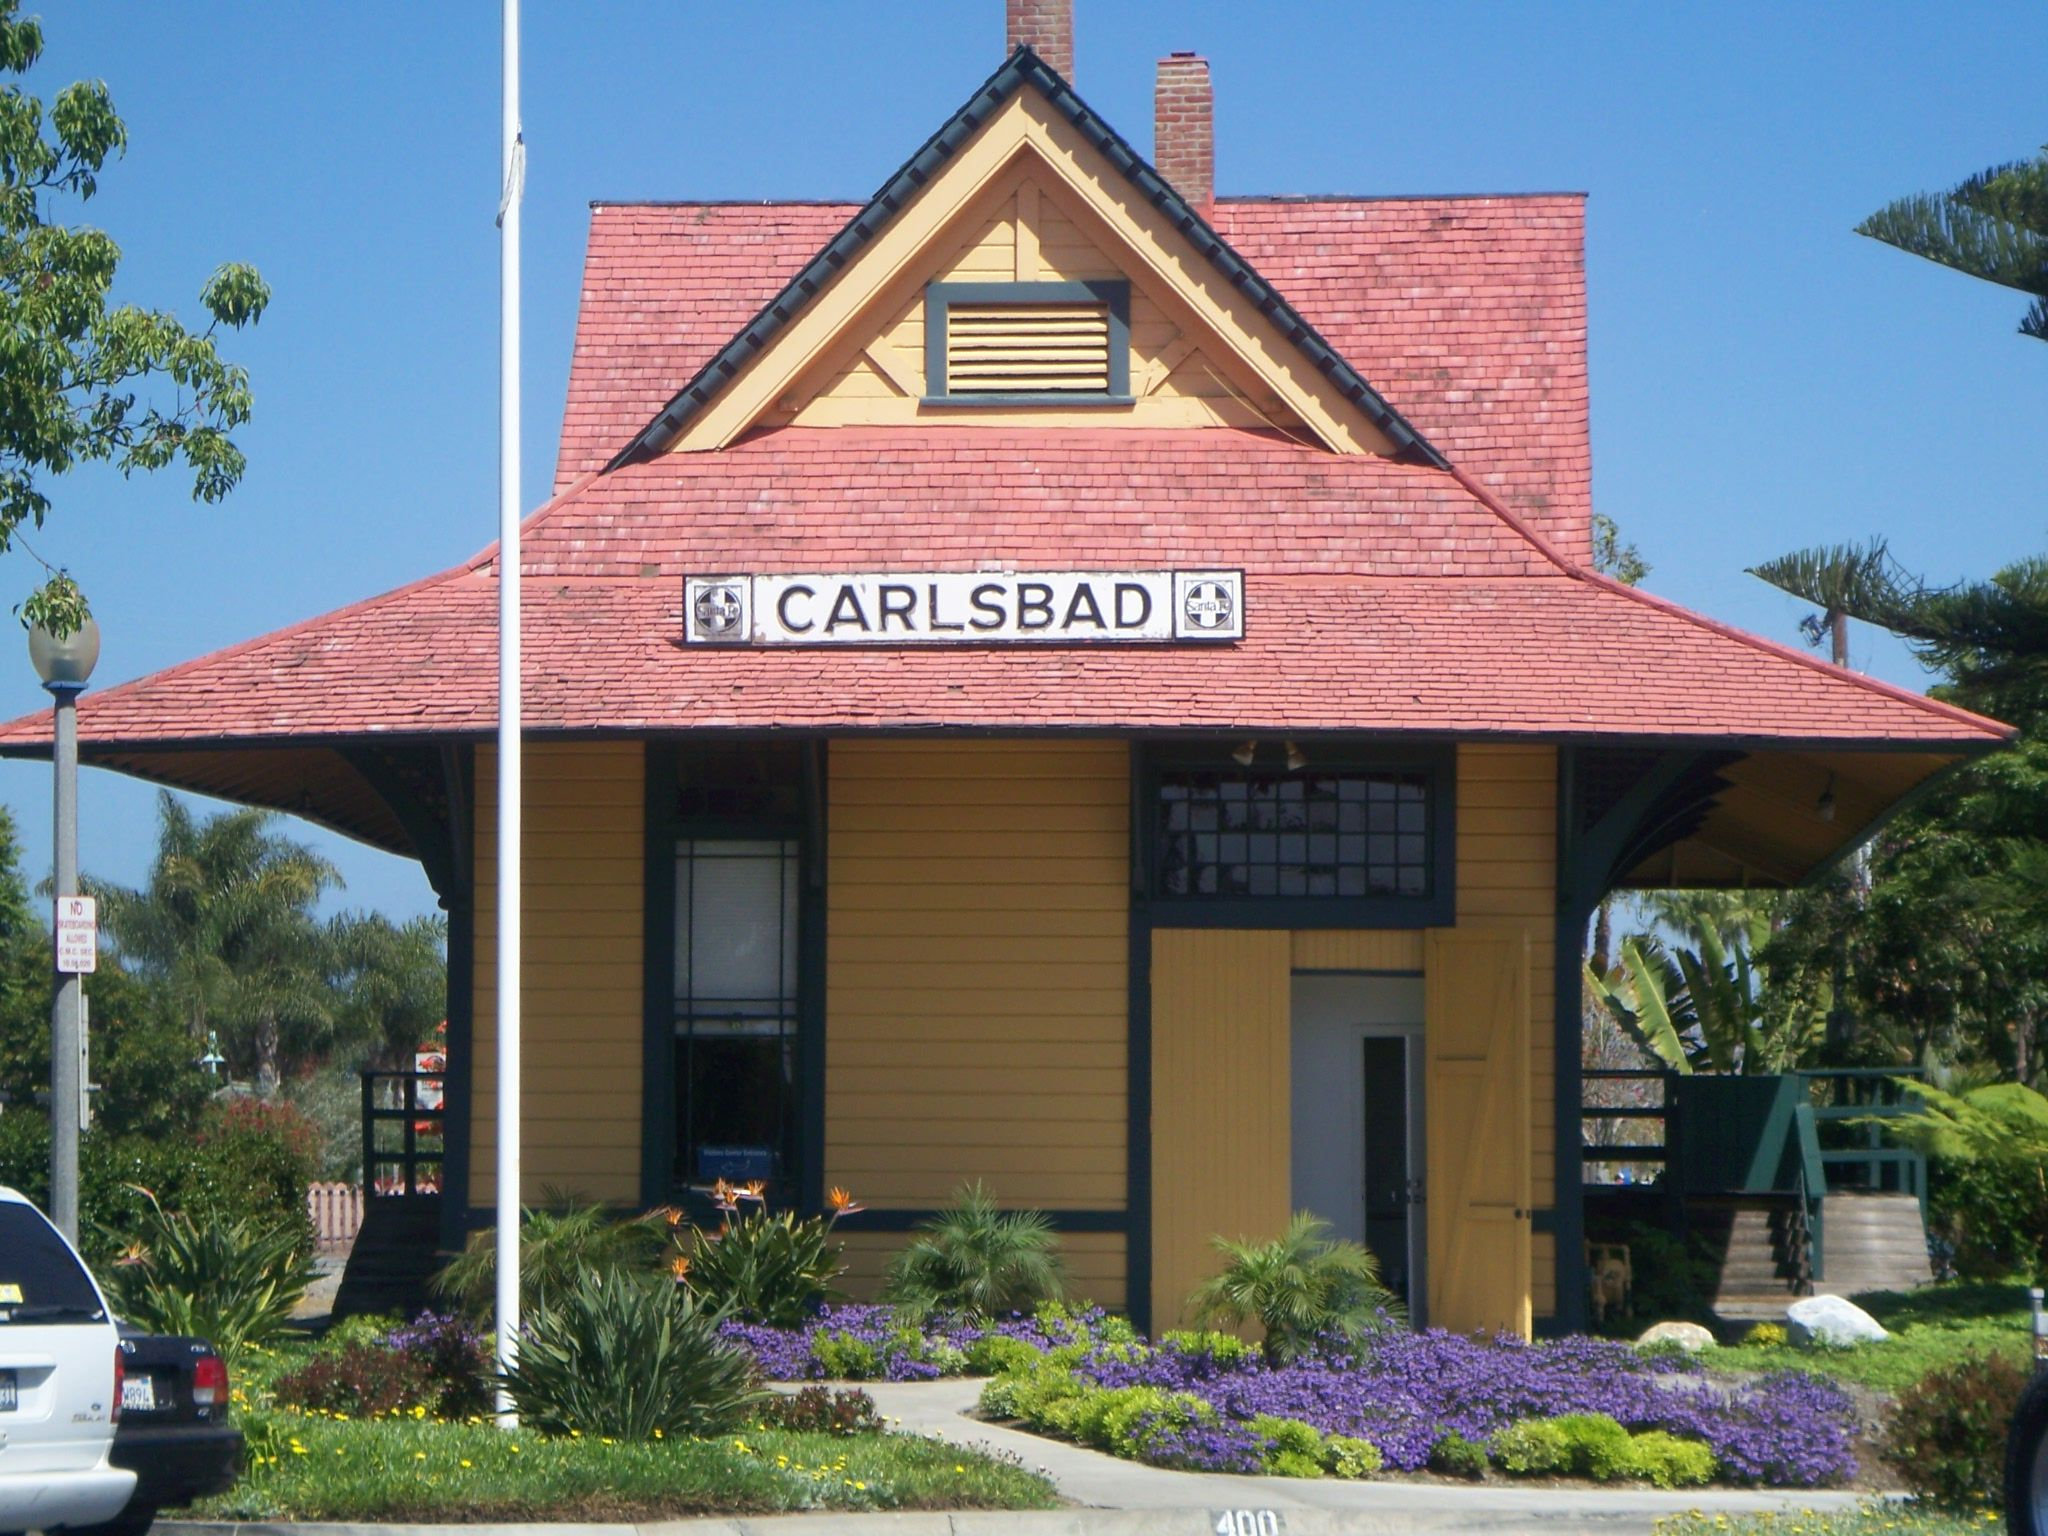 Carlsbad Convention and Visitors Bureau A